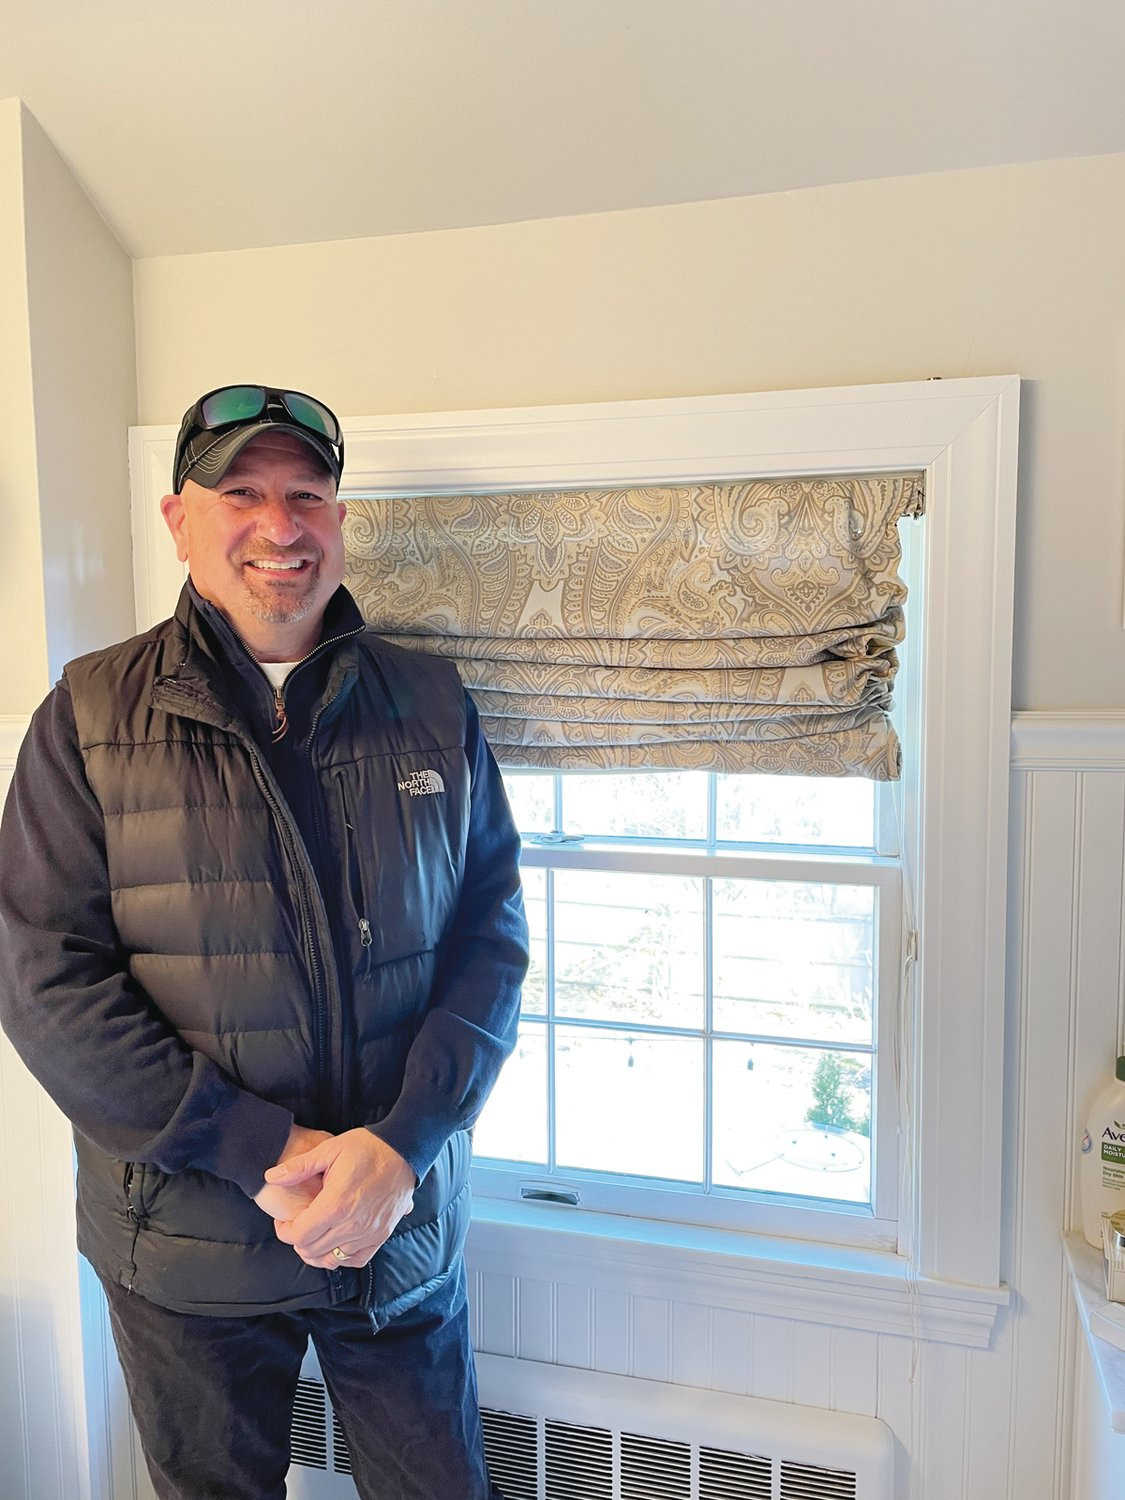 Meet Harris Alkins, seen here ready to measure the bathroom window of a Warwick resident who has decided to ditch the room's roman shades in favor of some long-lasting, traditional shutters.